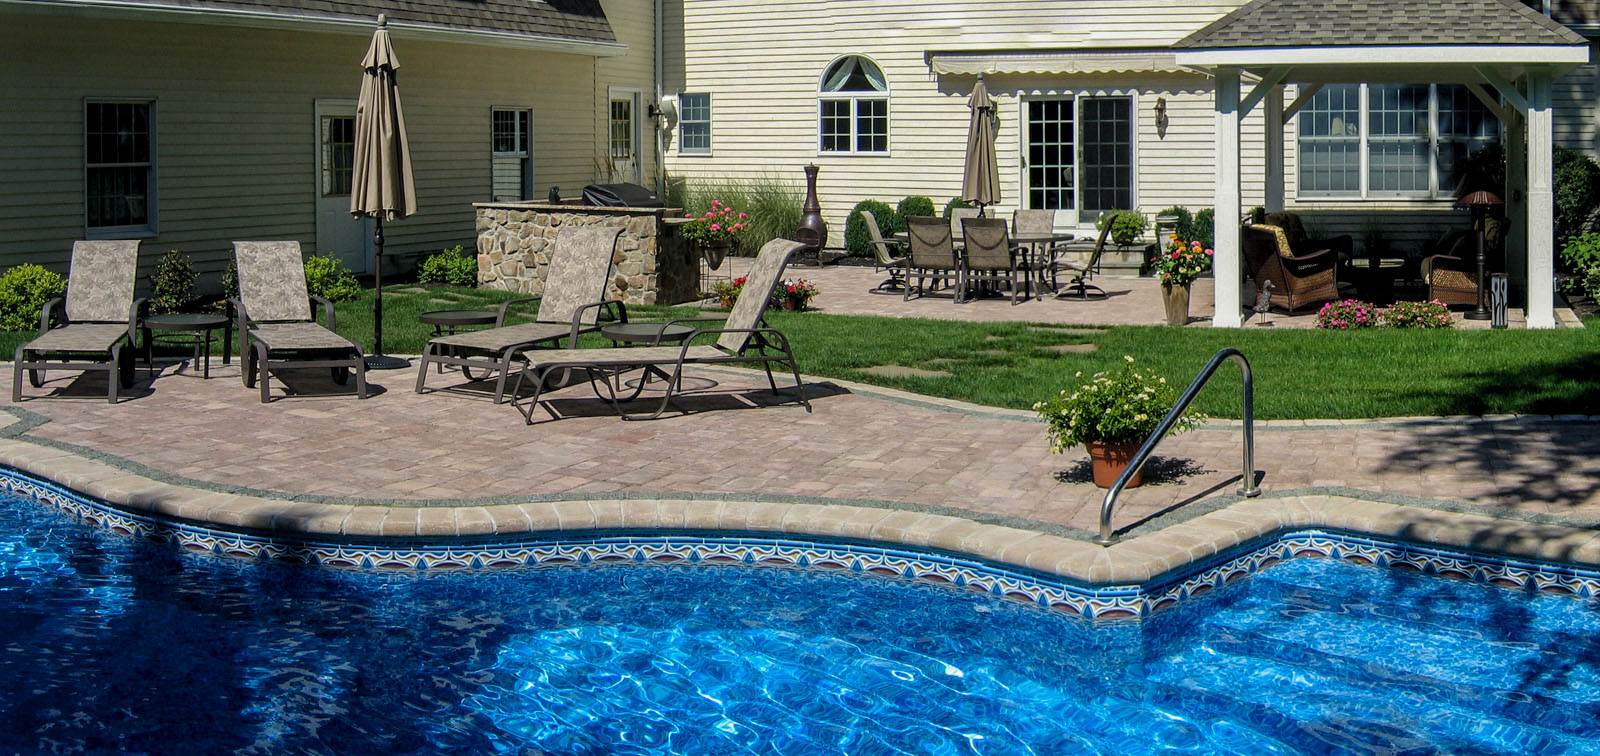 before and after landscape pictures, after, pool design nj